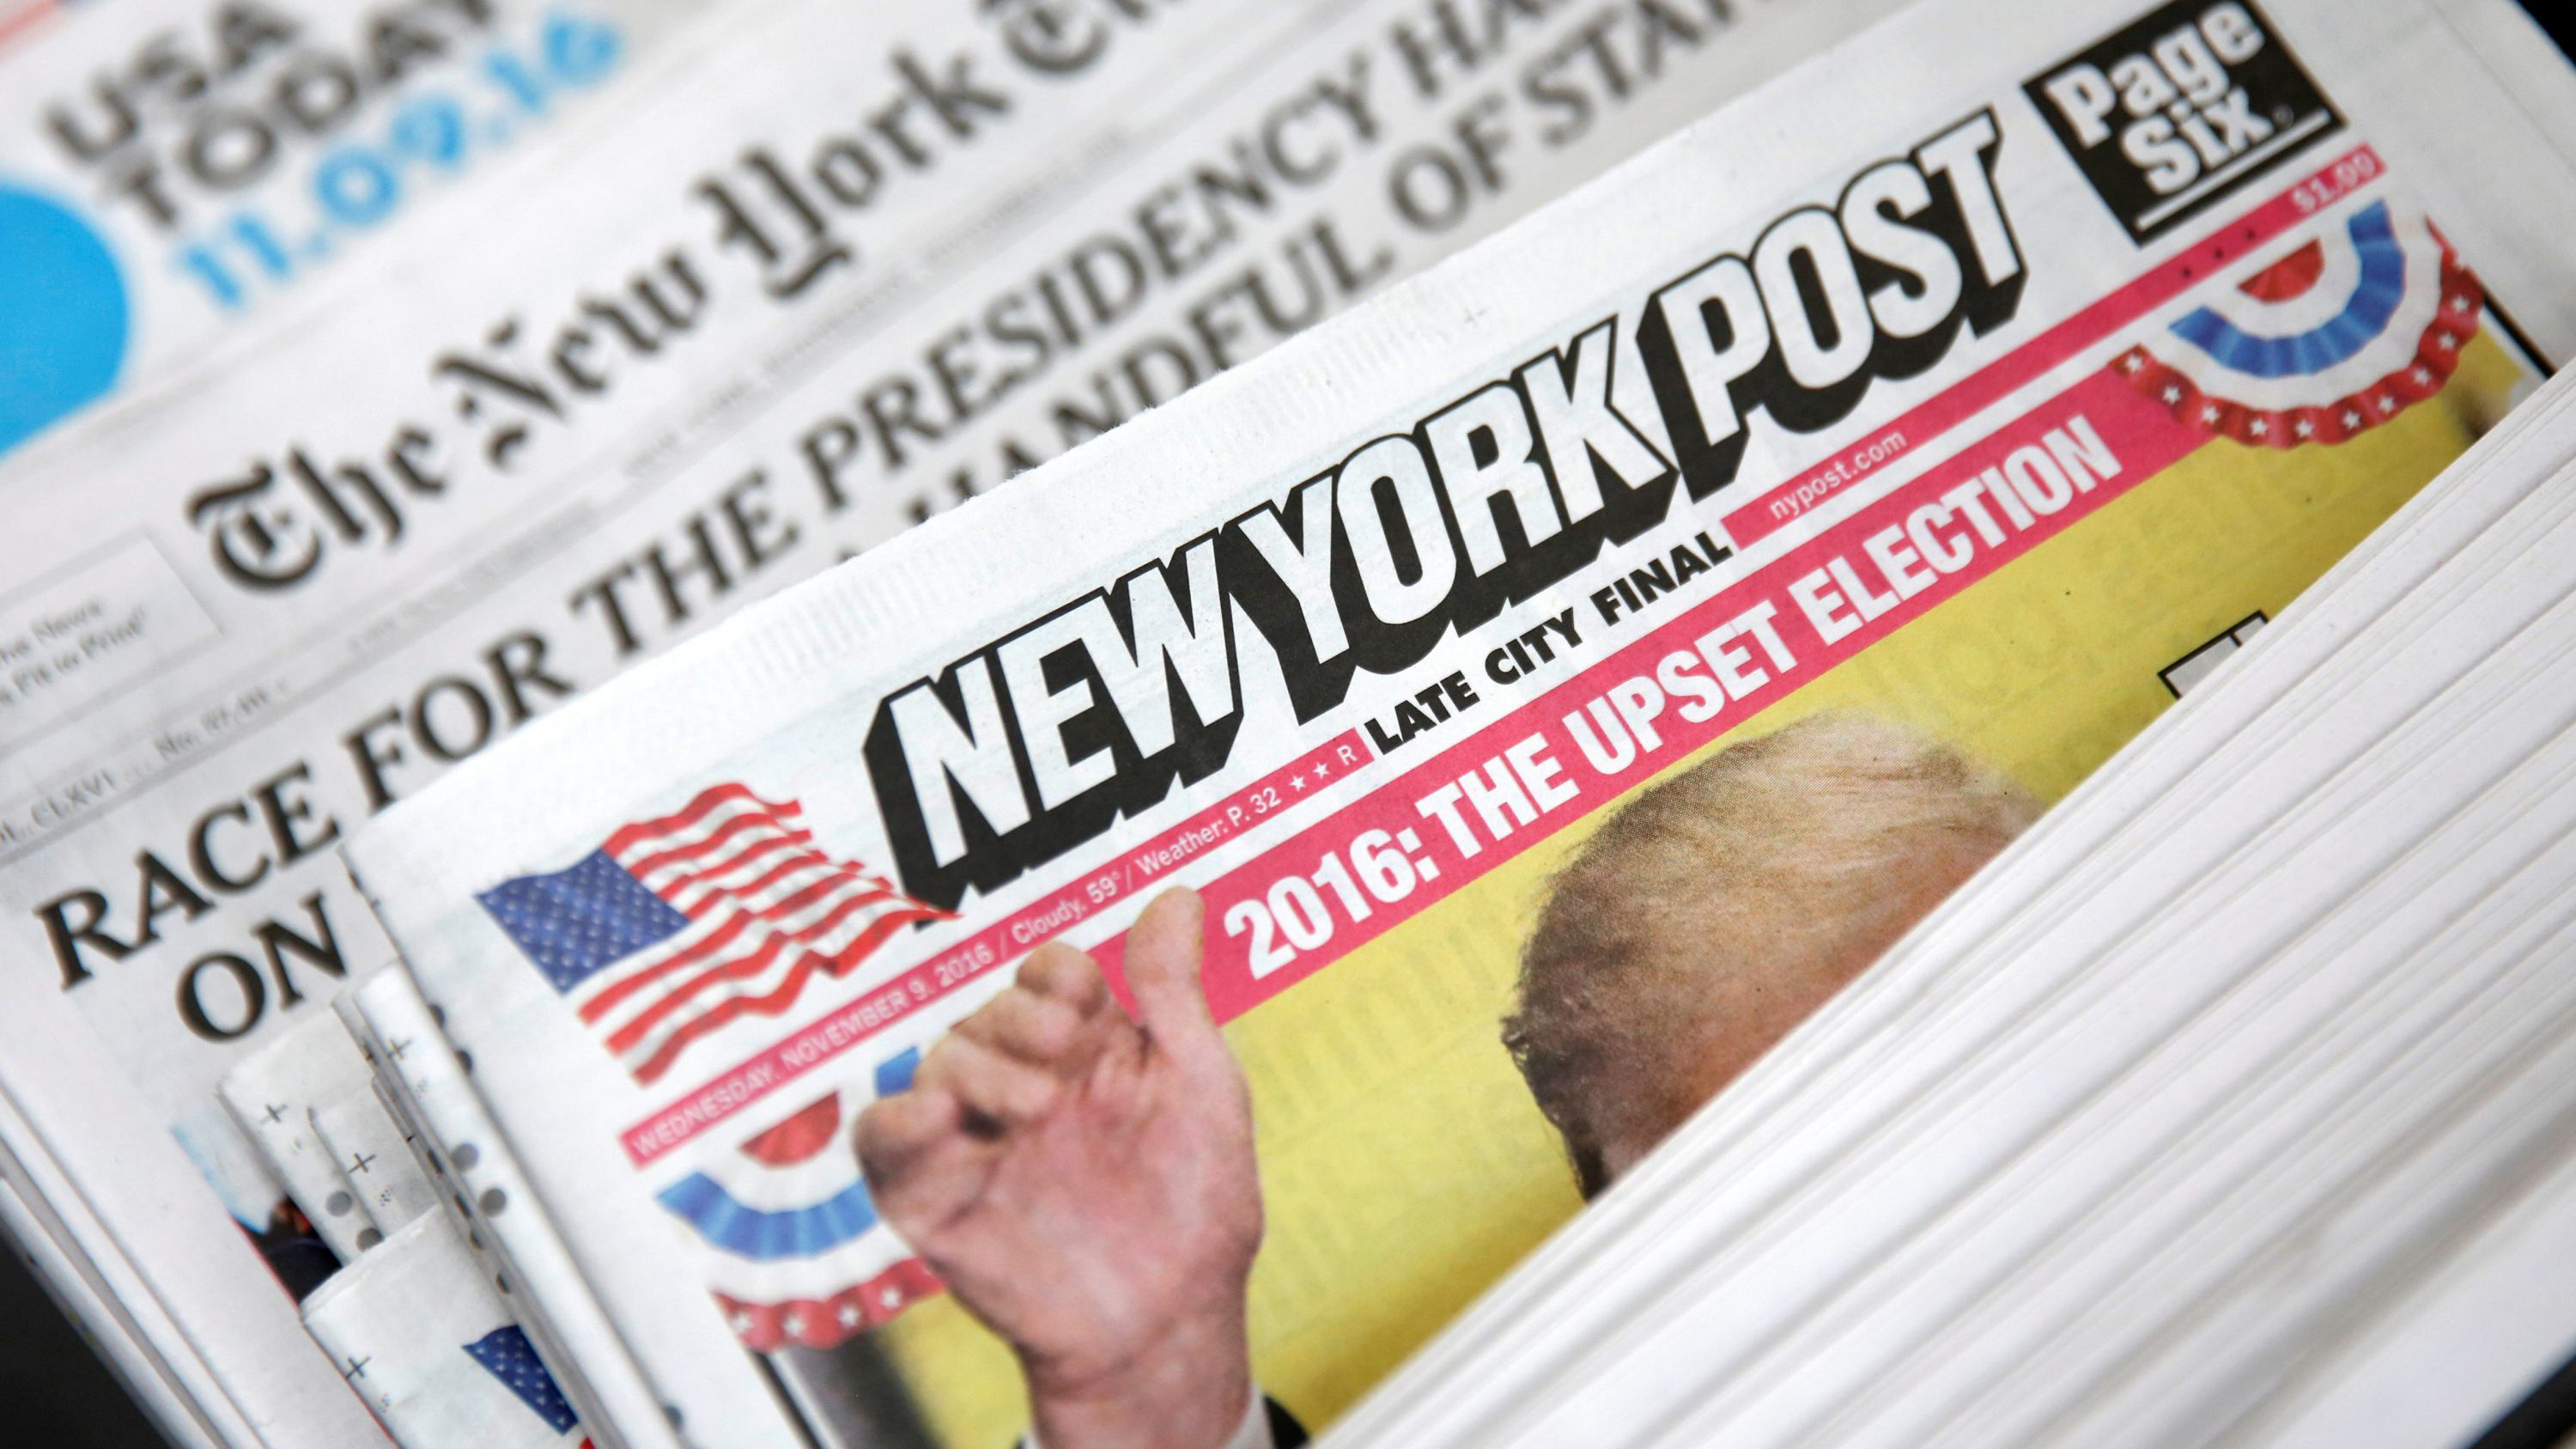 The cover of the New York Post newspaper is seen with other papers at a newsstand in New York U.S., November 9, 2016.